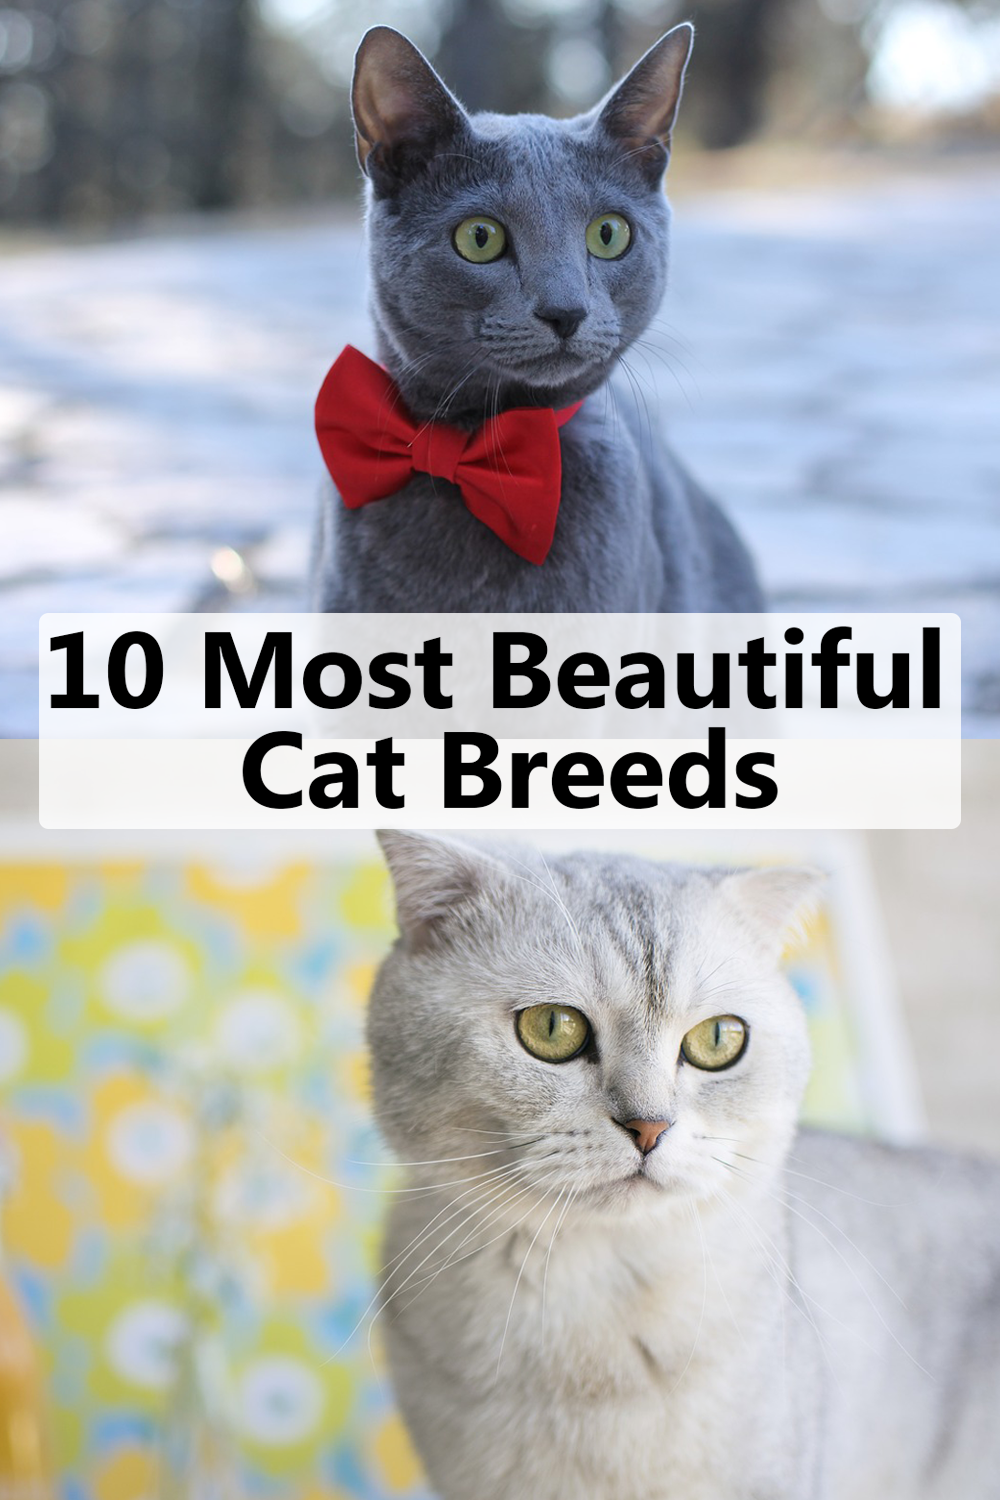 10 Most Beautiful Cat Breeds In The World (With images